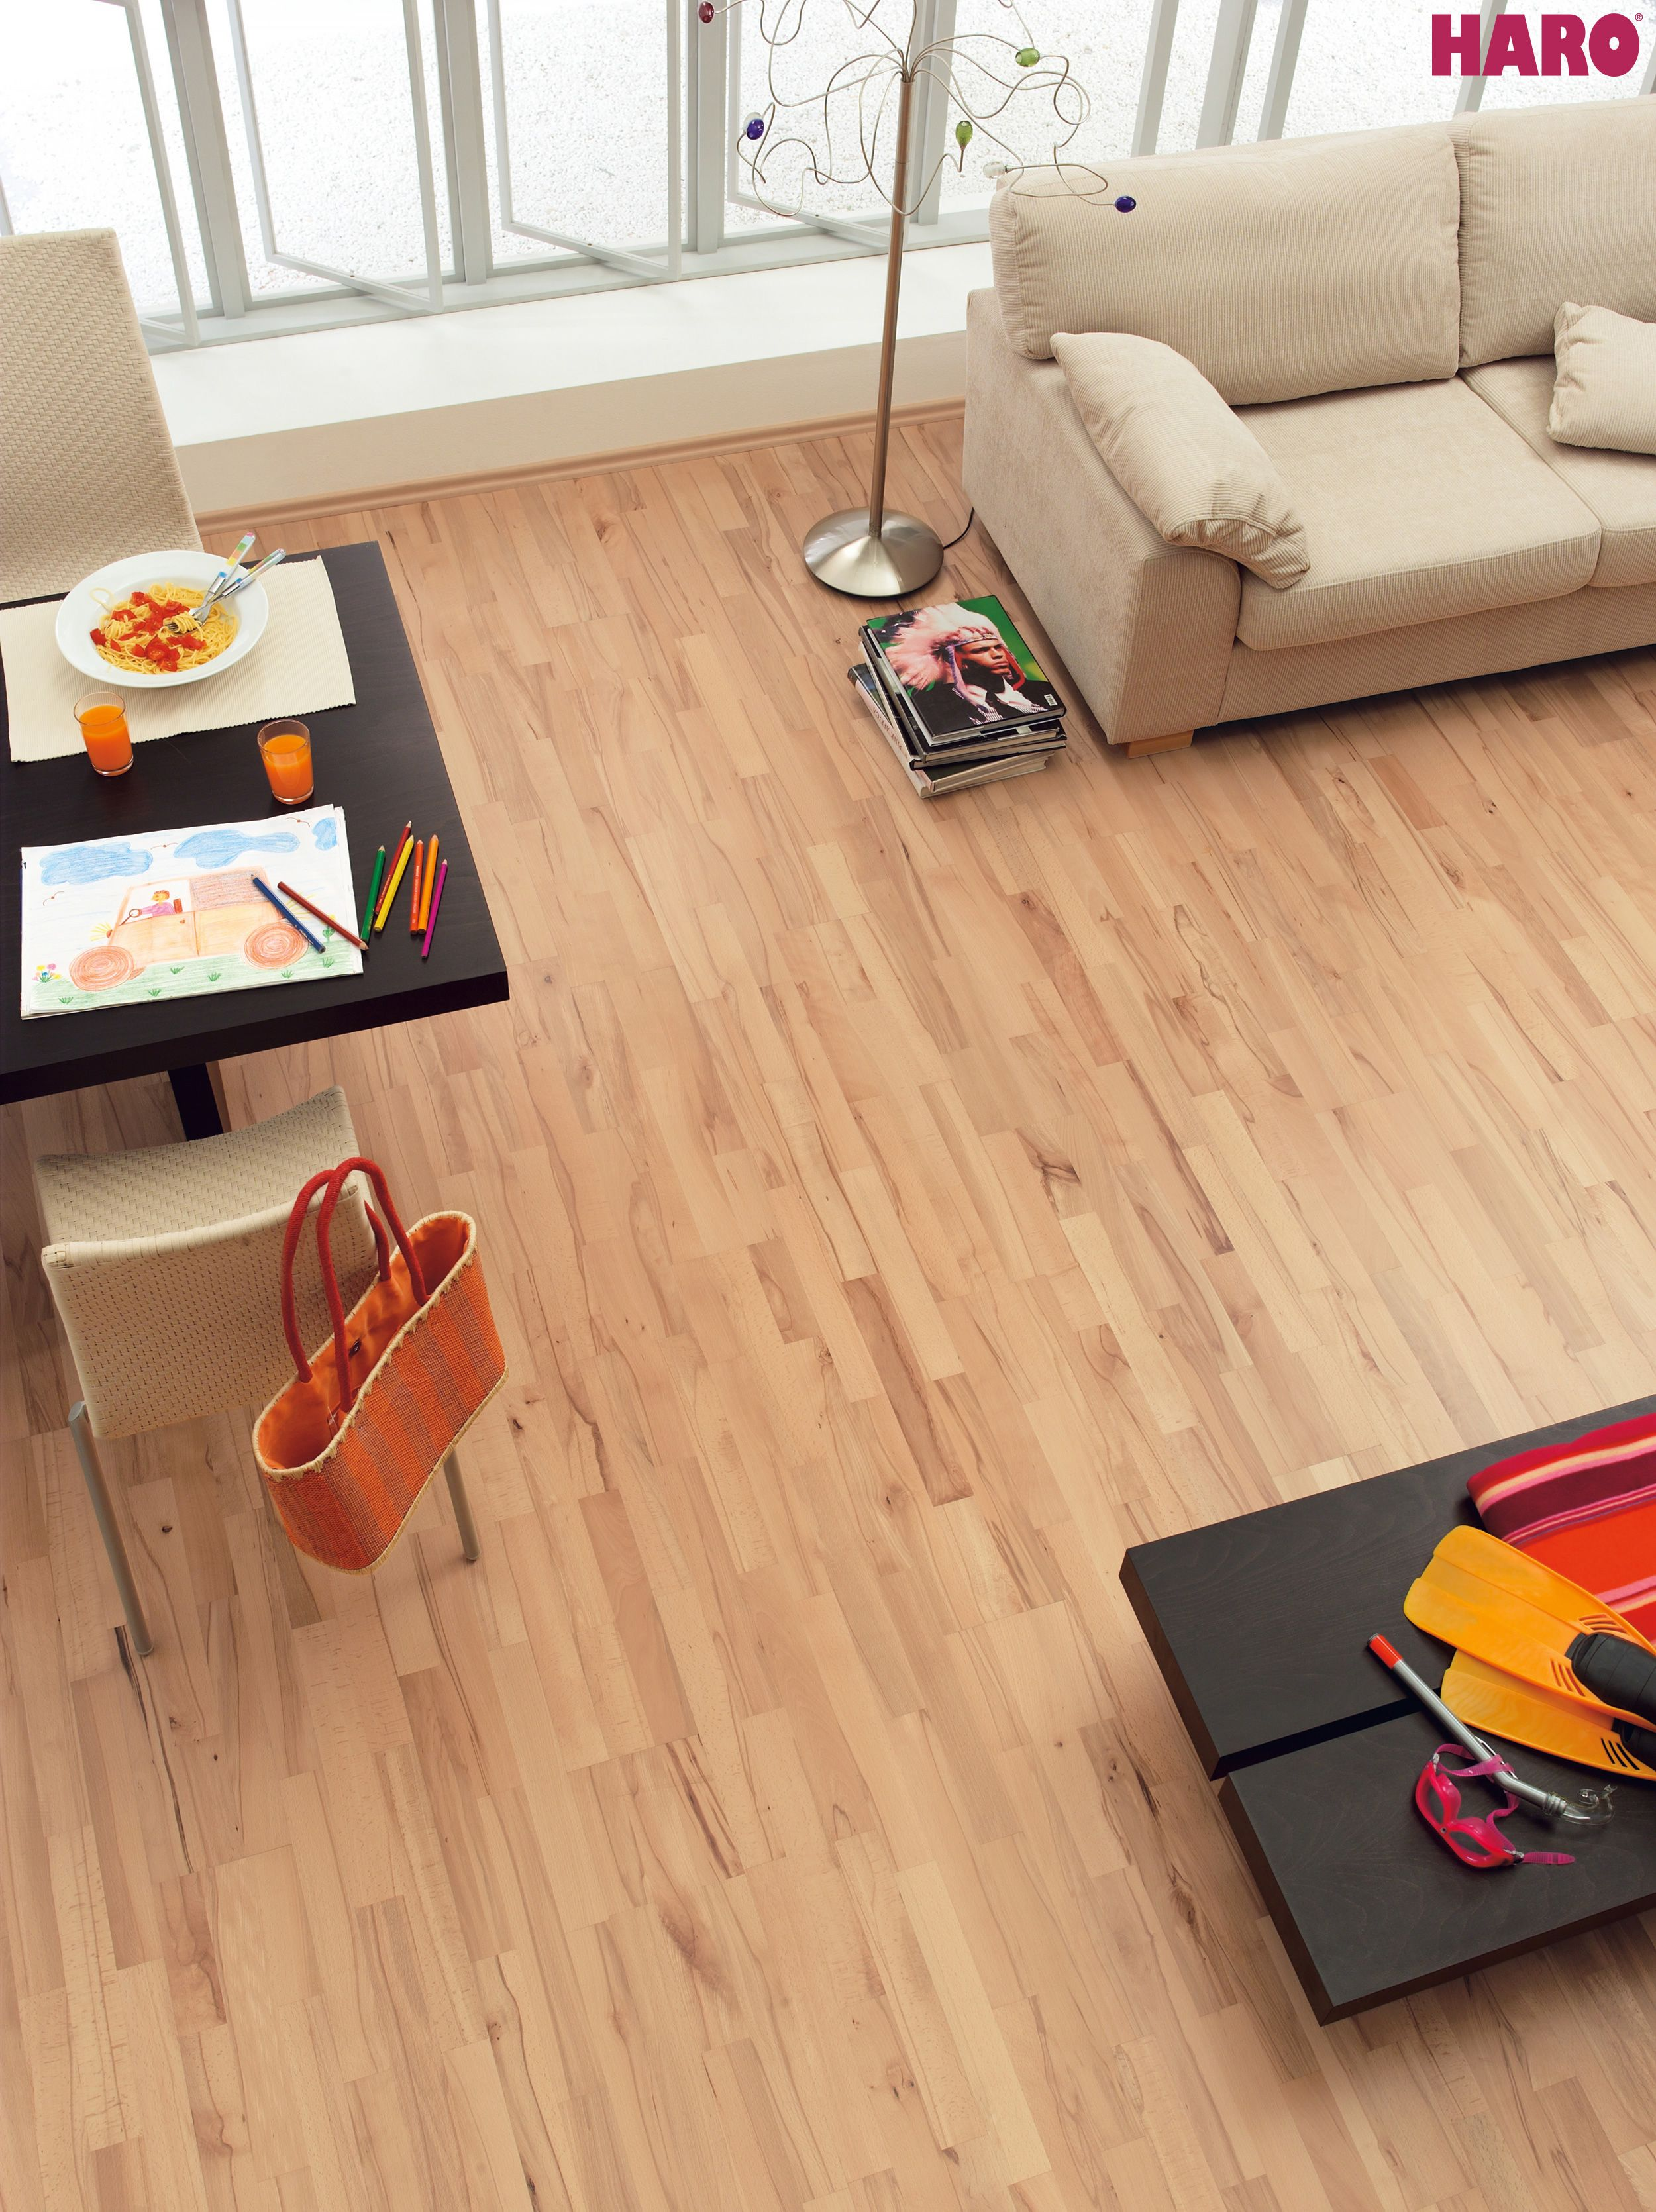 HARO PARQUET 4000 Longstrip Beech Steamed Country item